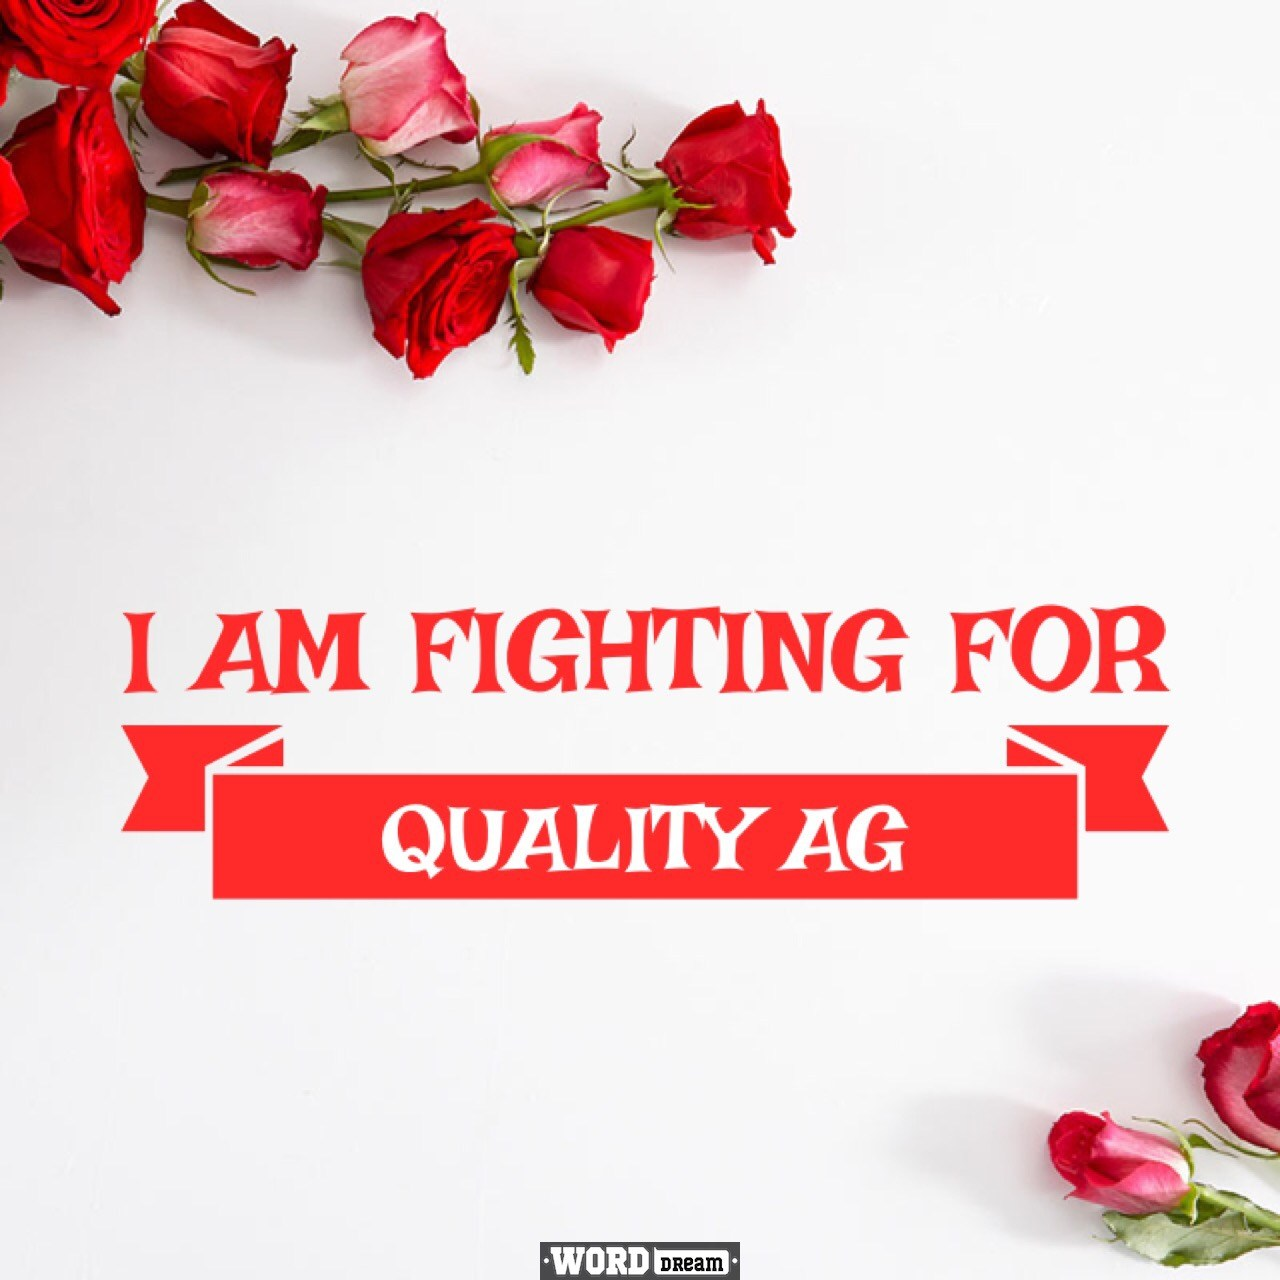 I am Fighting for Quality AG!